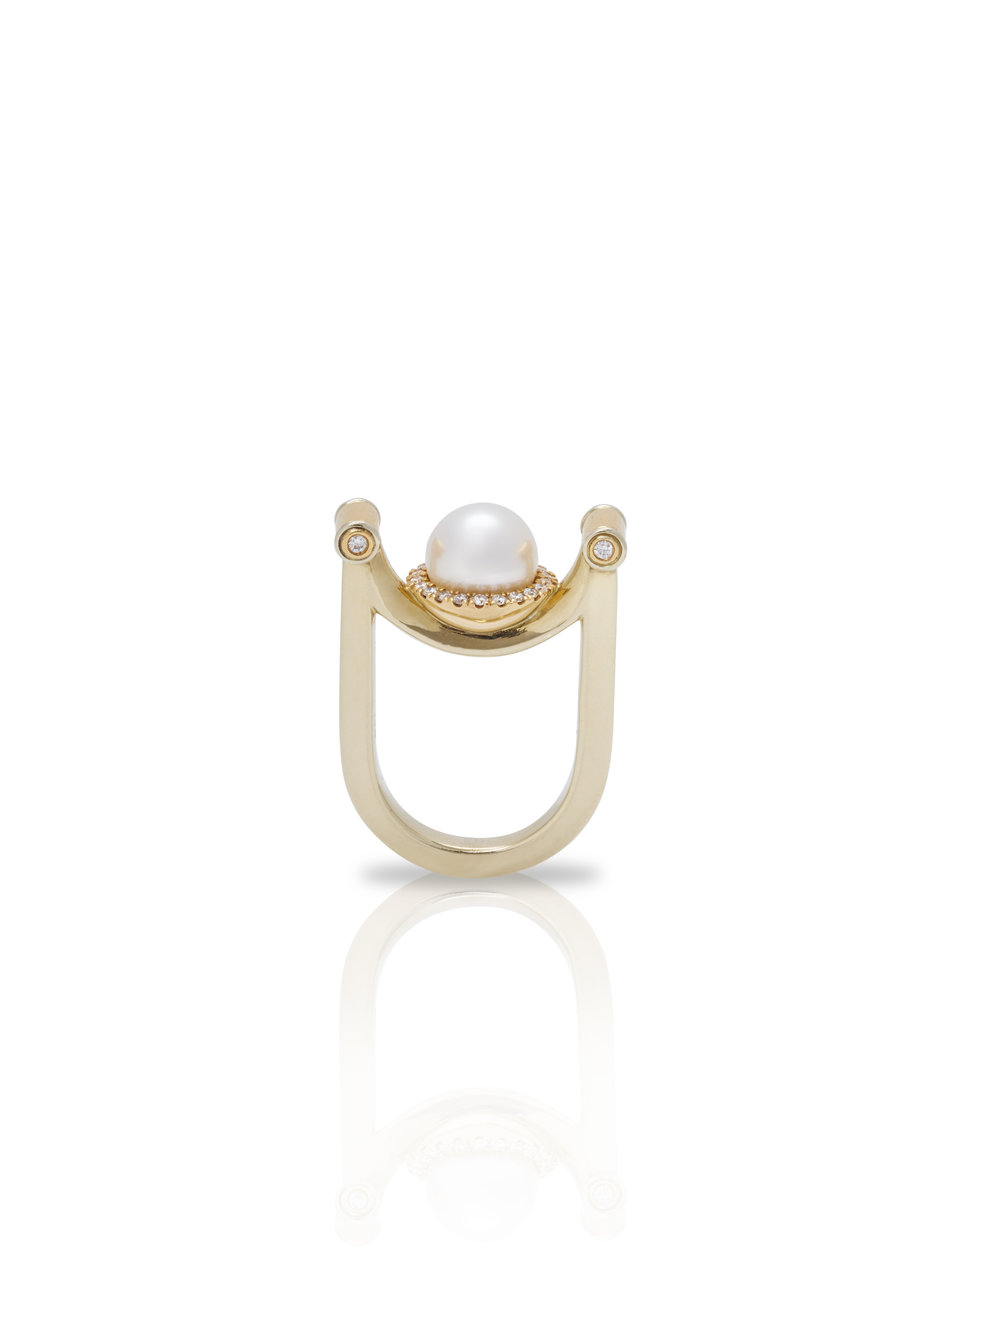 INVERTED PEARL RING    18K Gold, South Sea Pearl 0.3 CT Diamonds      Contact for inquiry